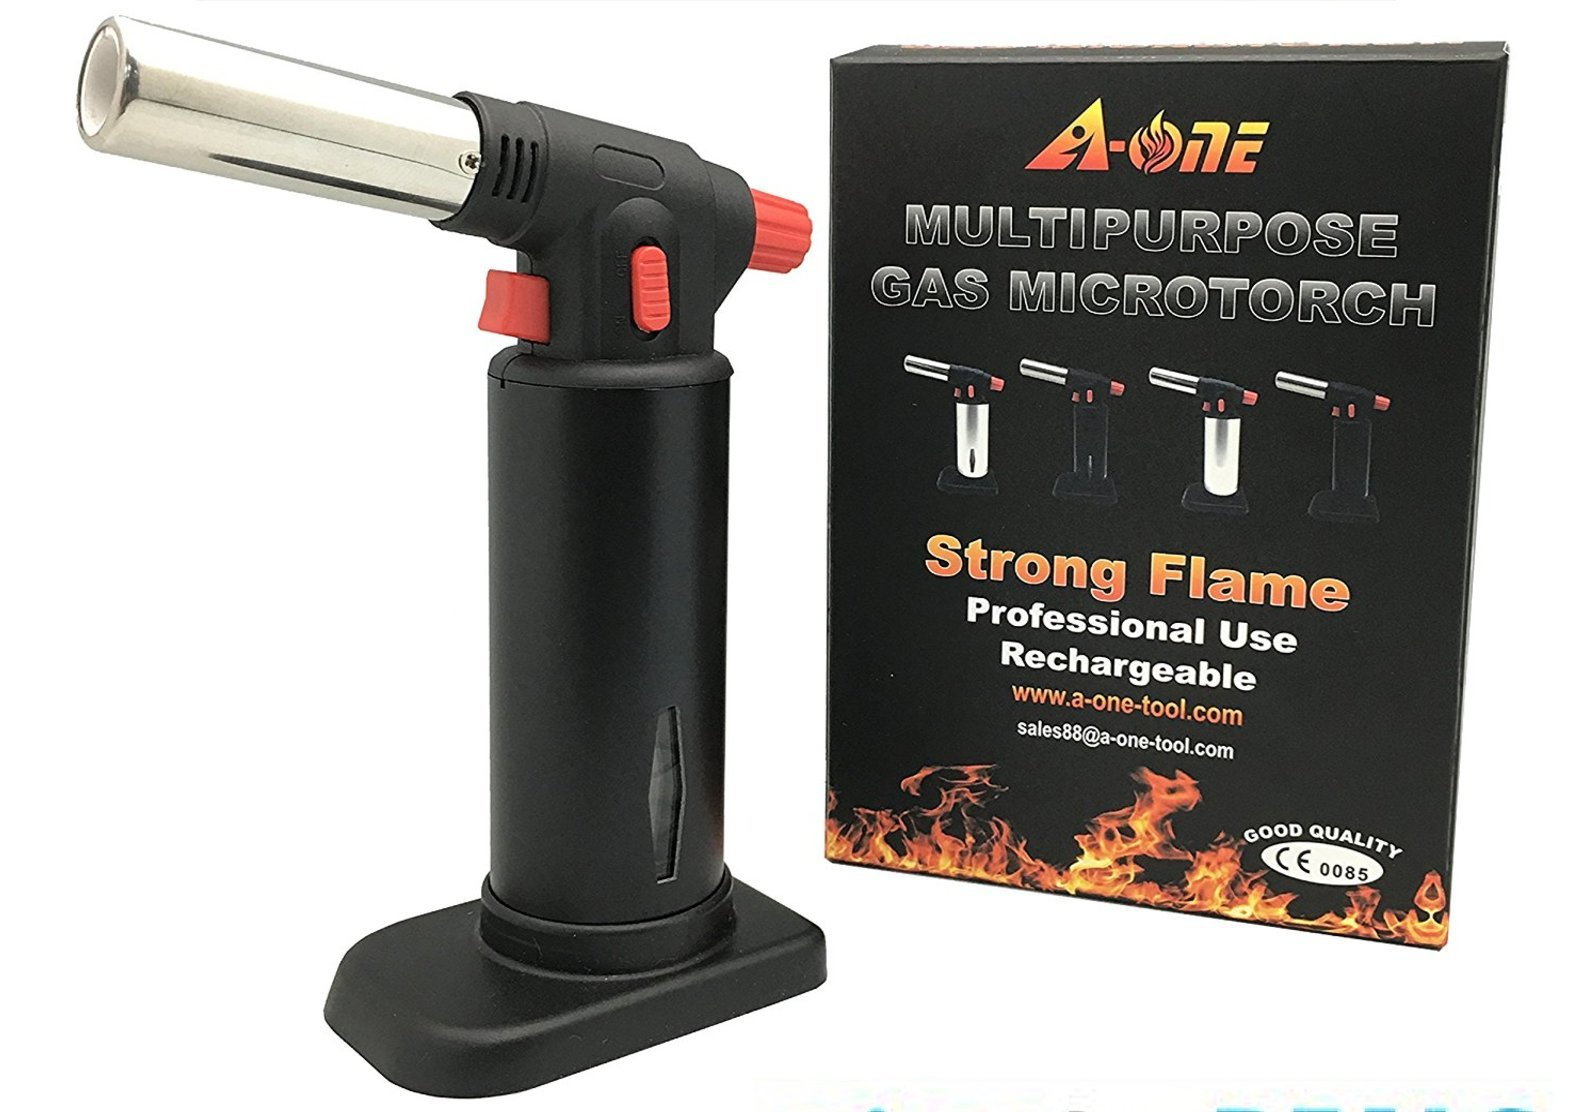 Culinary Torch, AONE Creme Brulee Torch - Kitchen Torch - Best Creme Brulee Torch - Food Torch - Cooking Torch - Cooking Blow Torch - Brulee Torch - Butane Torch For Cooking - Blow Torch